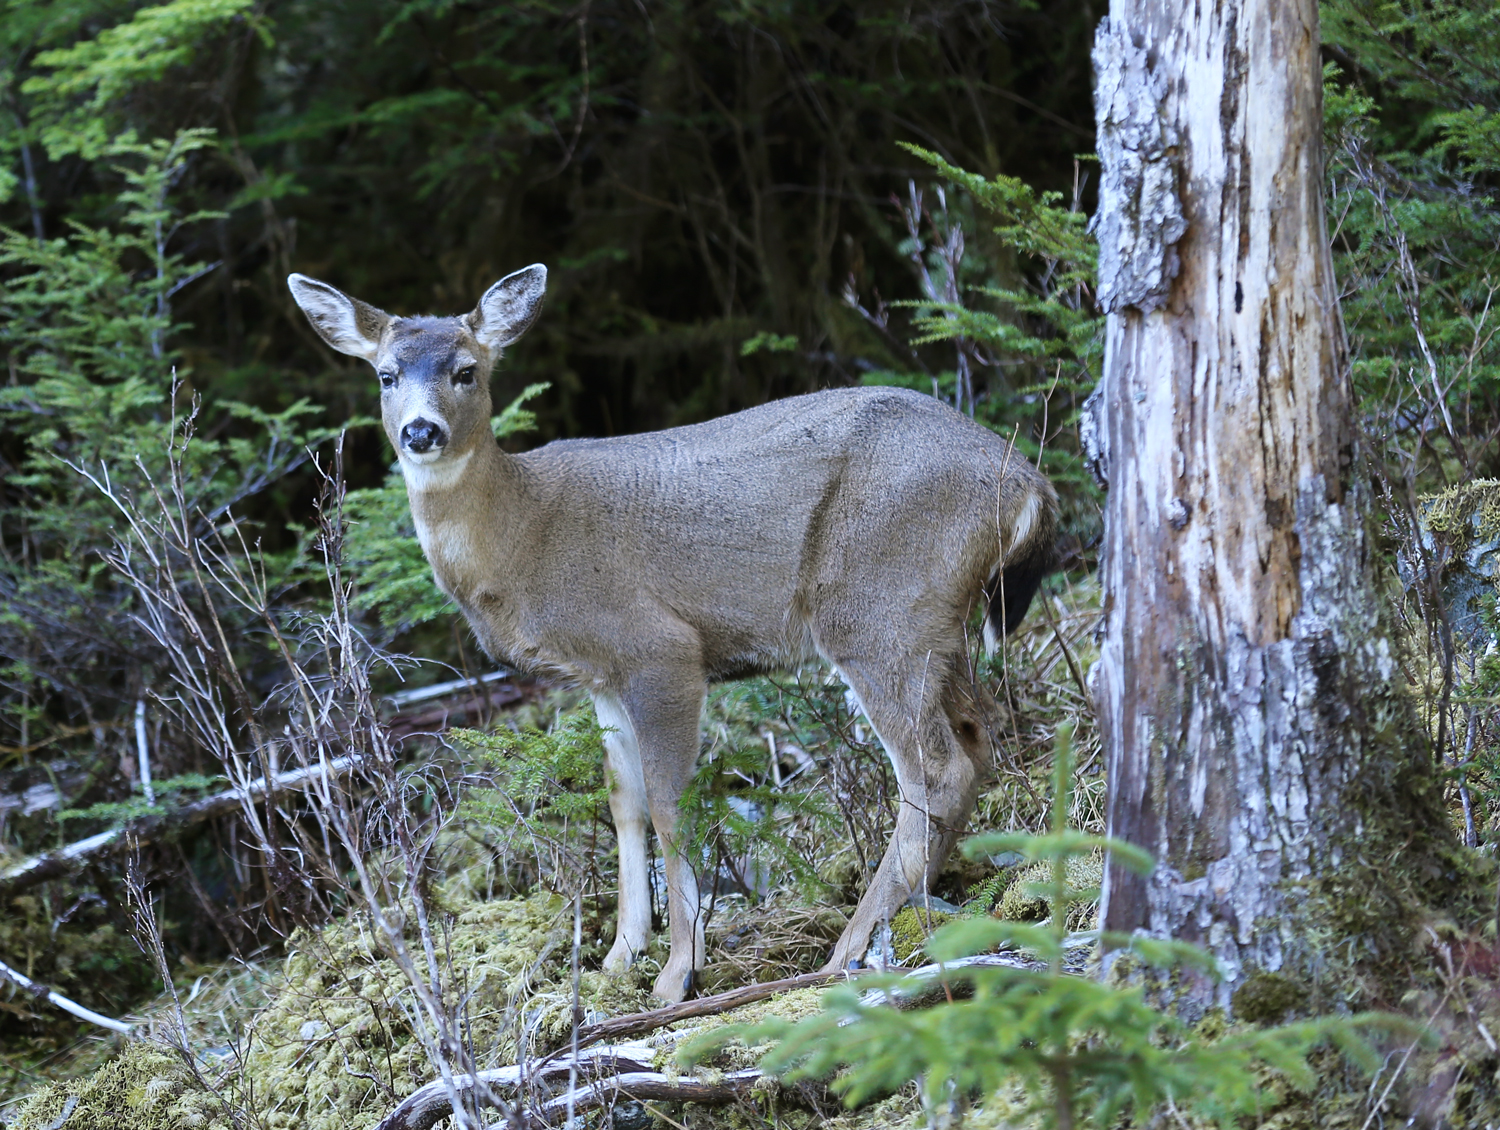 Sitka blacktail deer practicing a broadside presentation by the road.